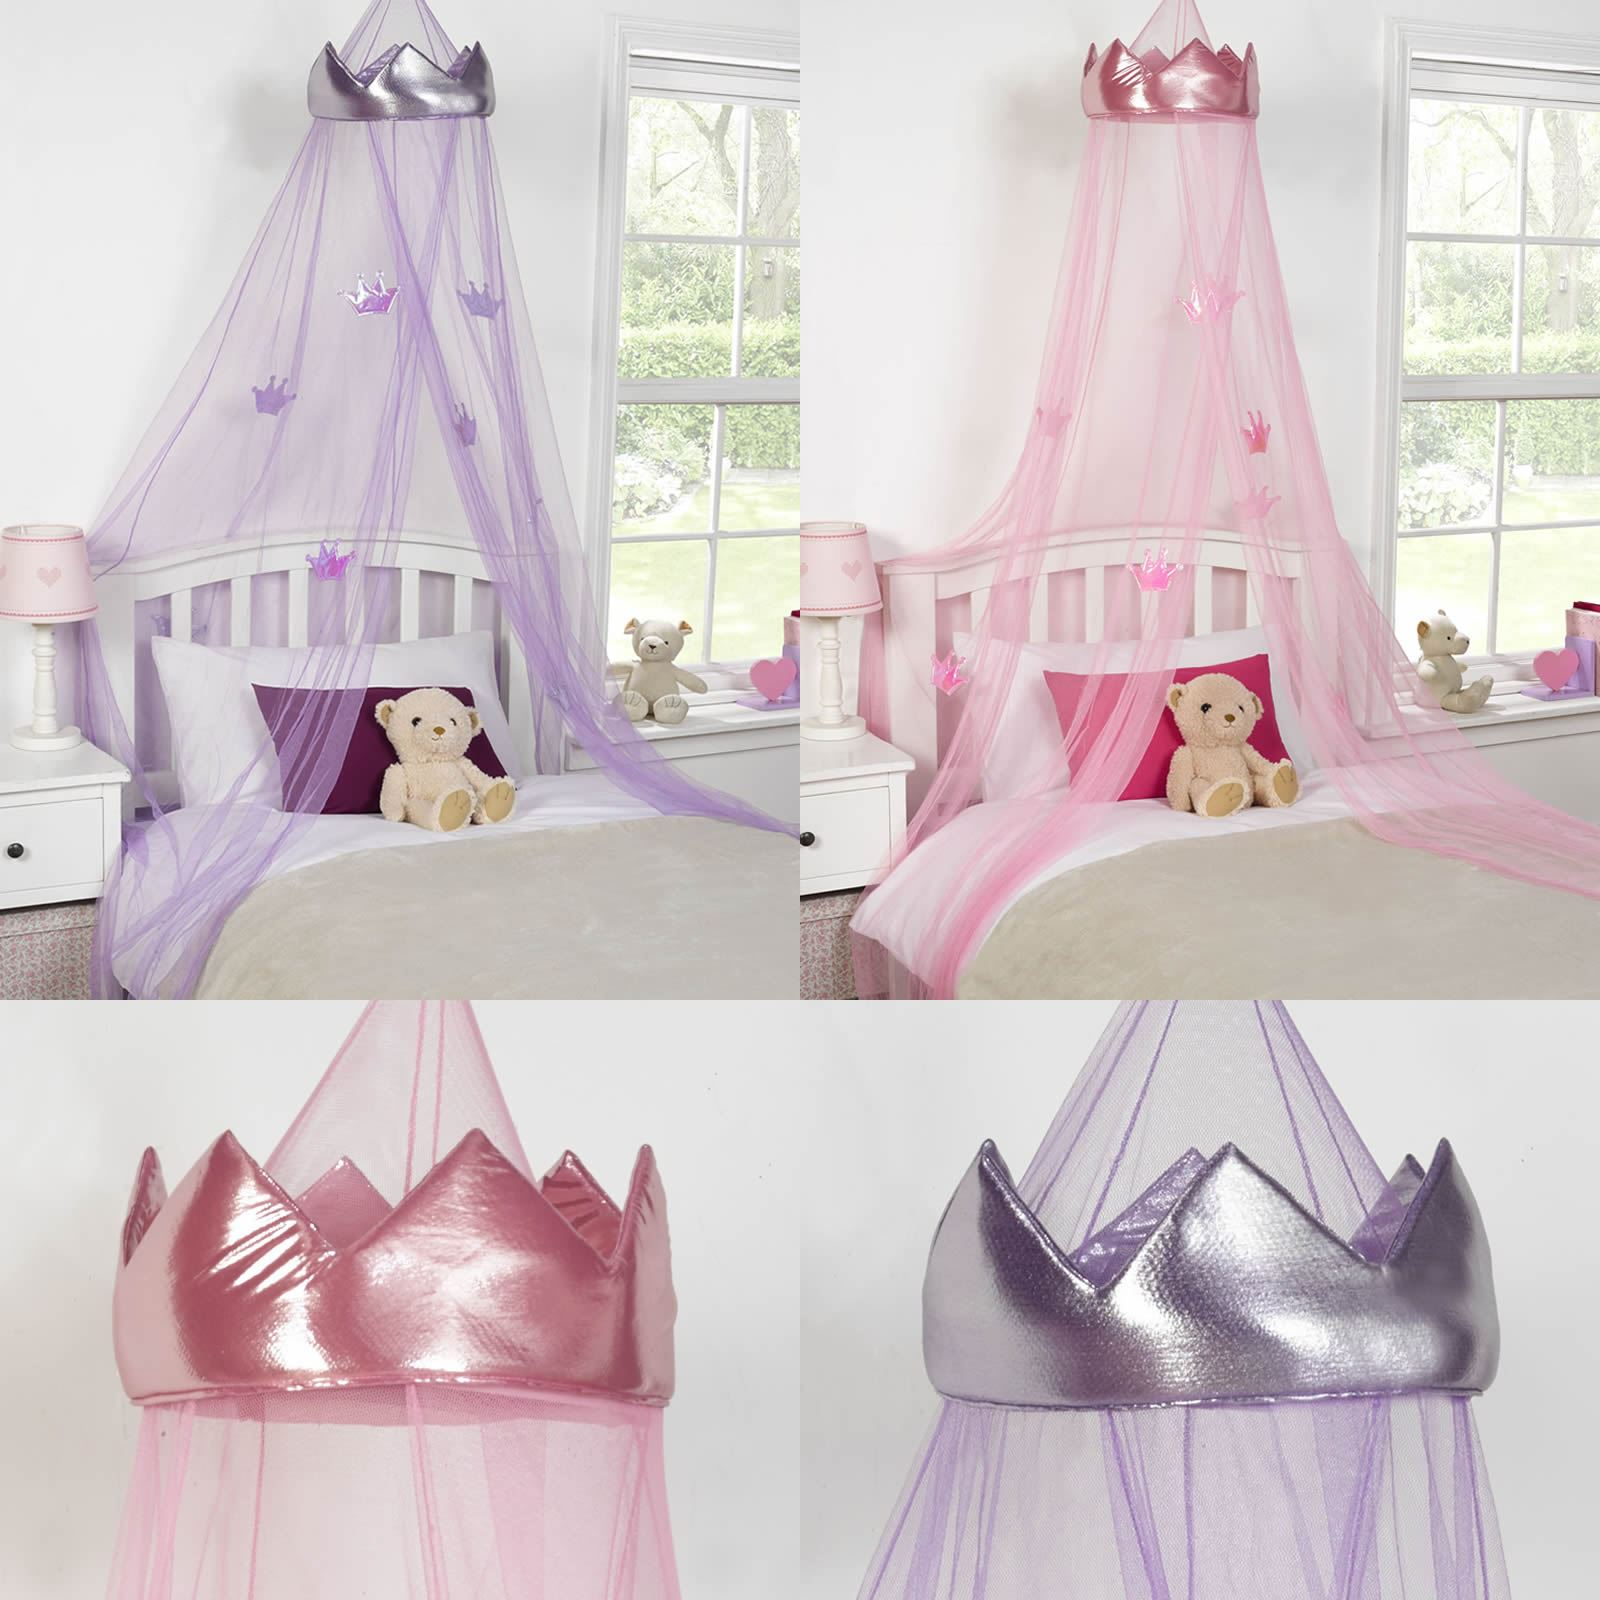 Item specifics : girl bed tent - memphite.com